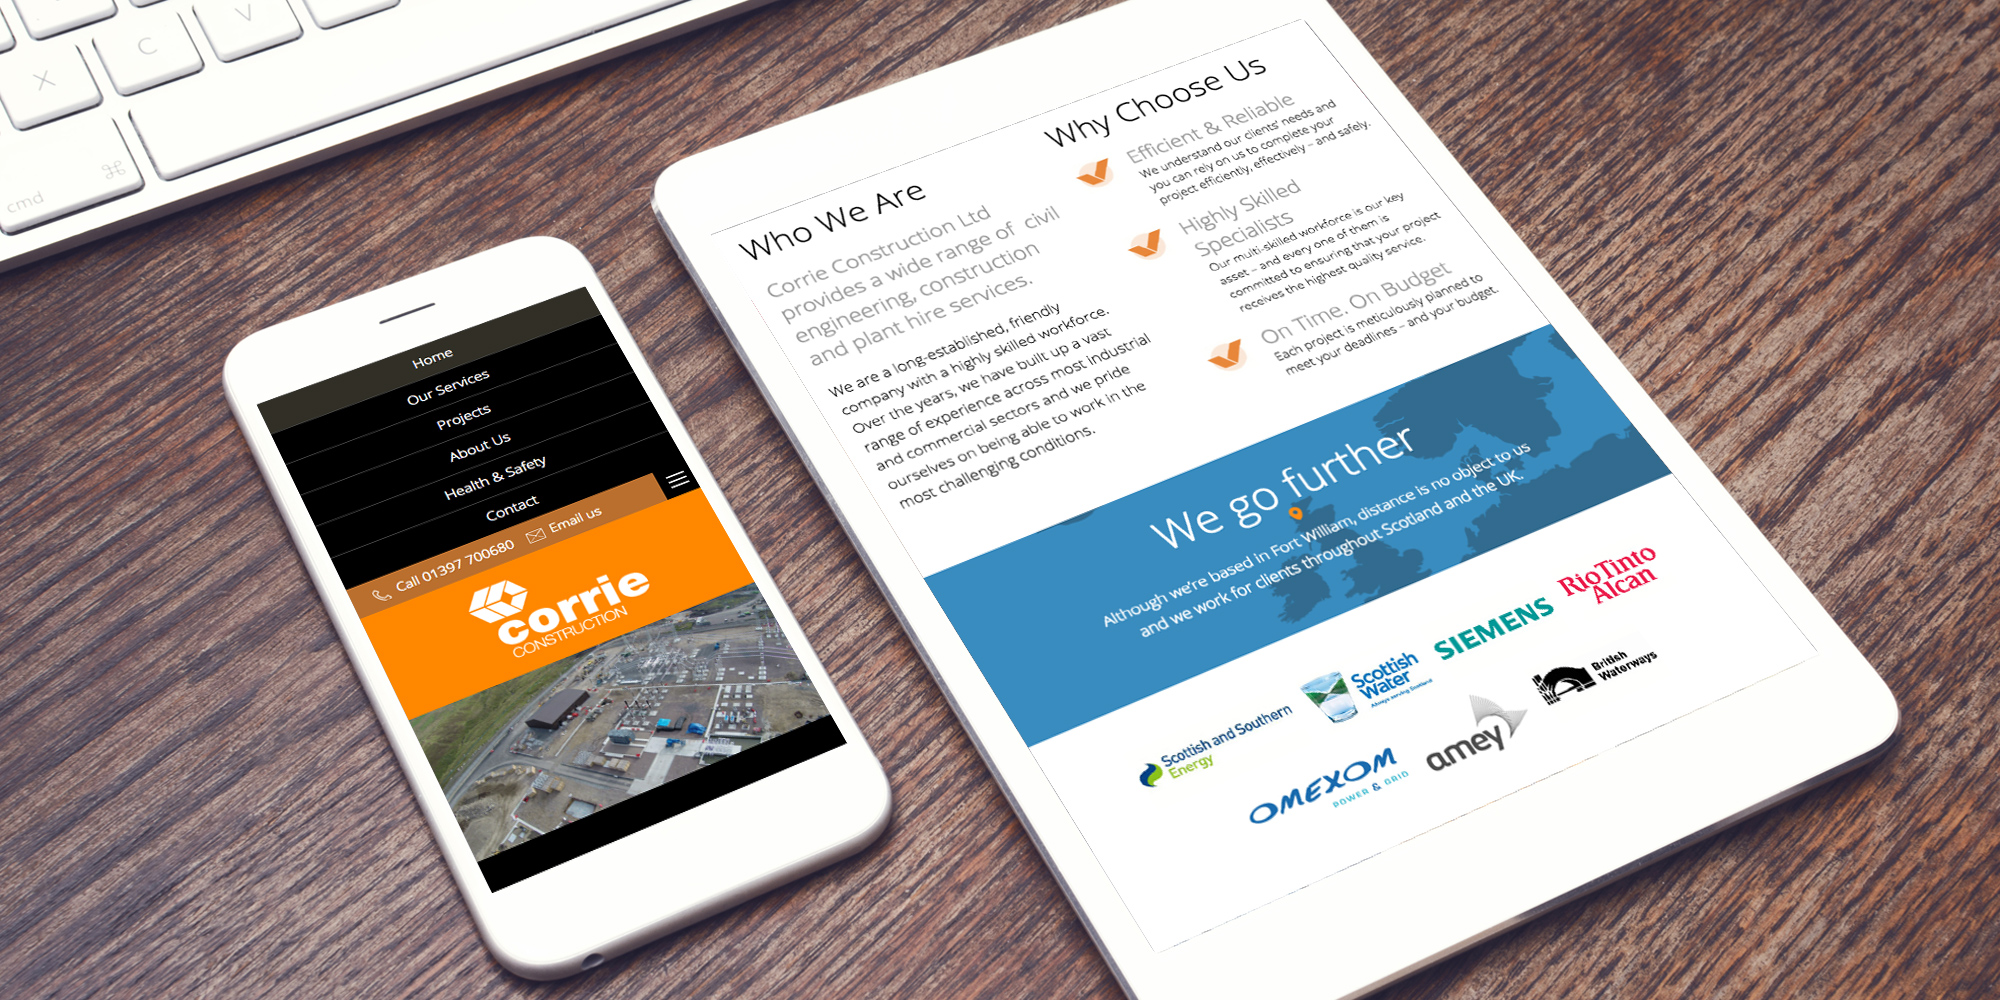 Resposive website design for Corrie Construction